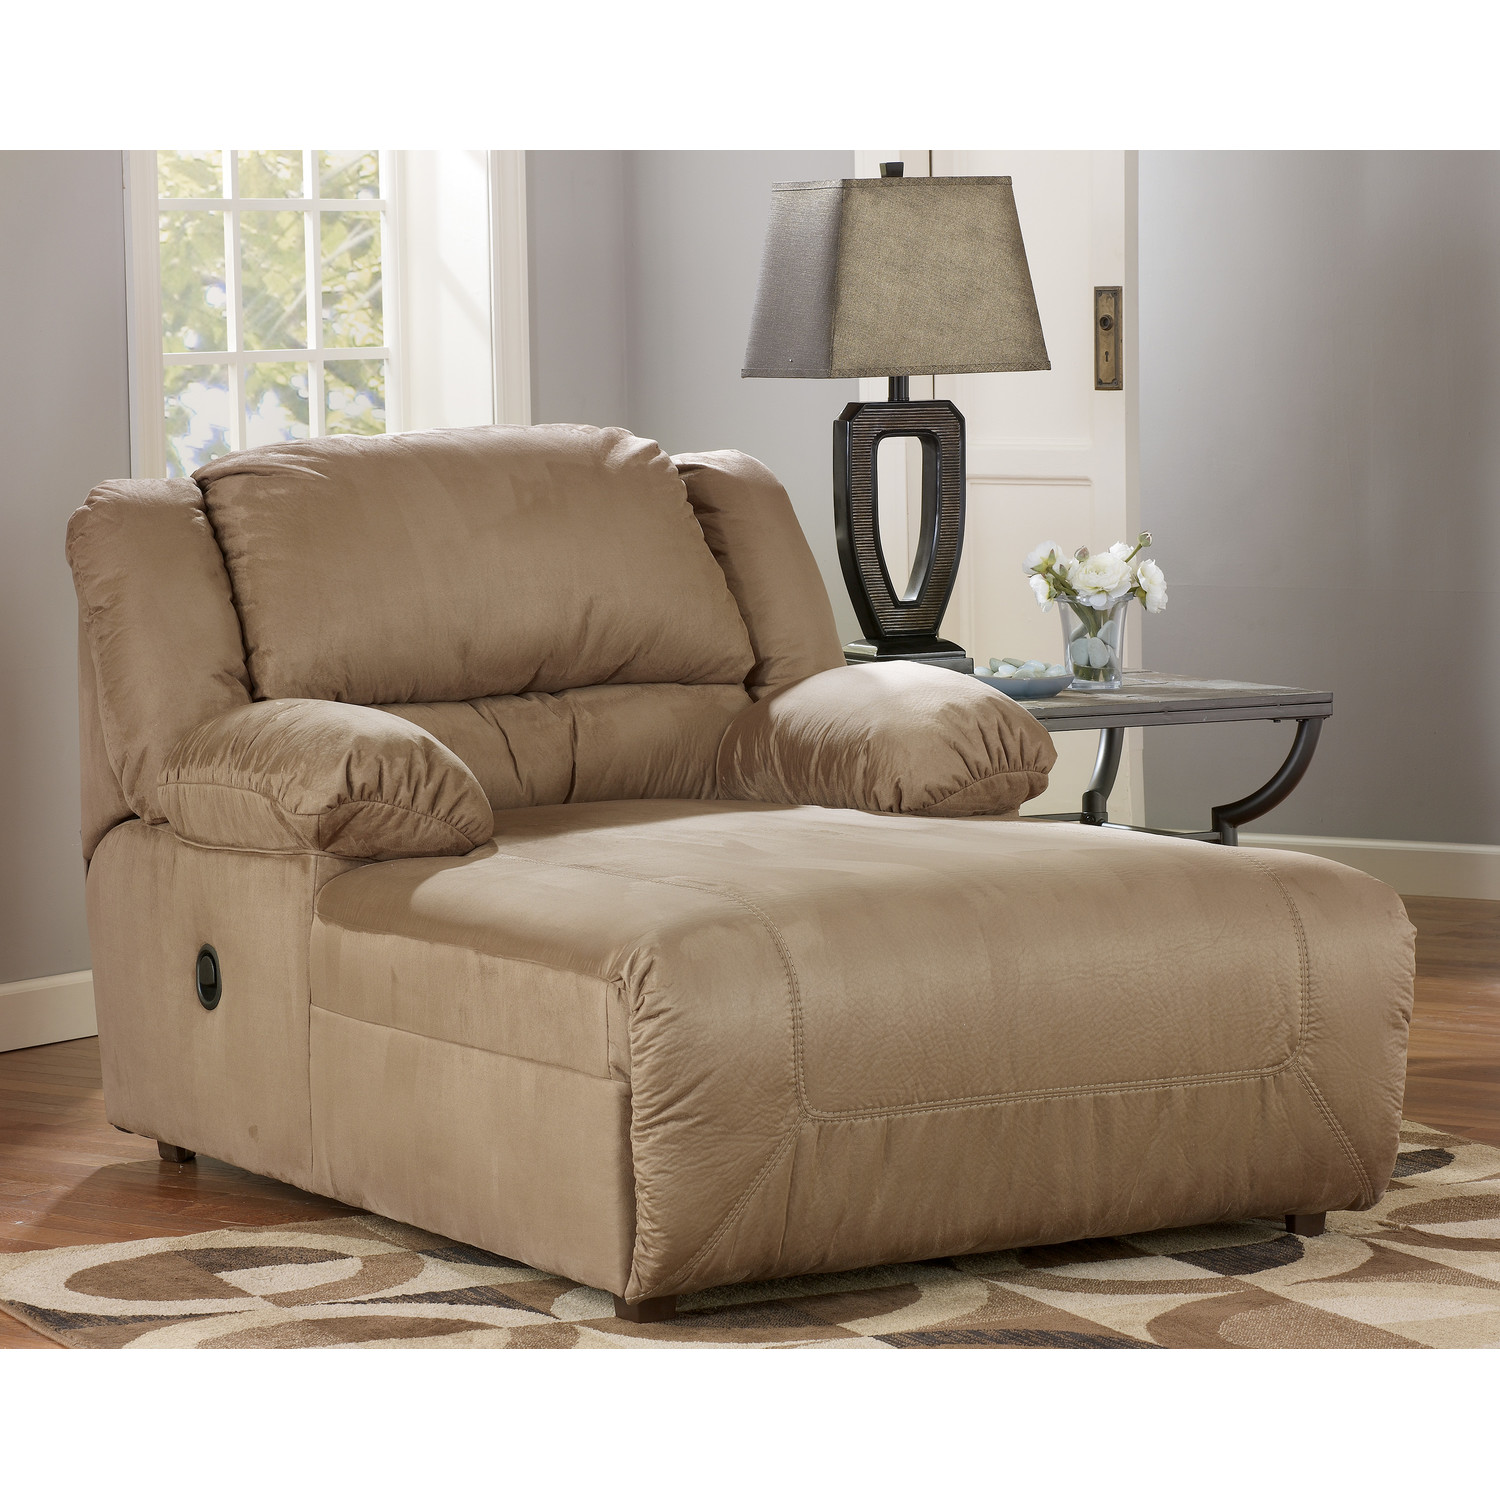 Image of: Indoor Chaise Lounge Chair Image